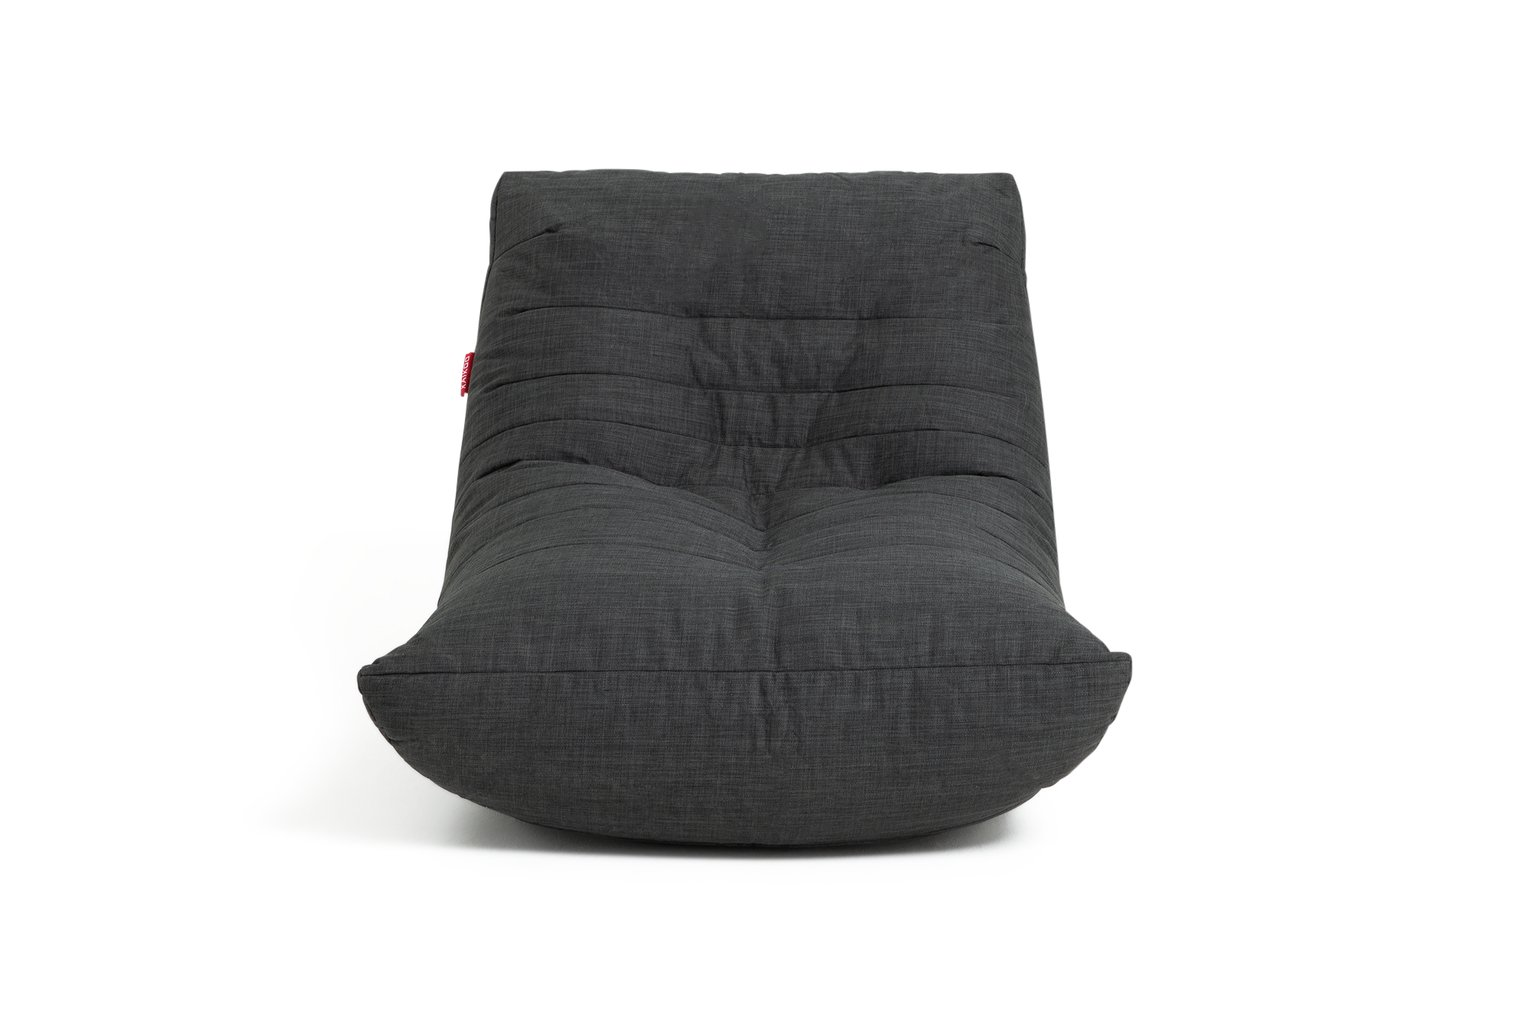 Argos Home Fabric Lounger Chair - Charcoal  sc 1 st  Argos & Buy Argos Home Fabric Lounger Chair - Charcoal | Armchairs and ...